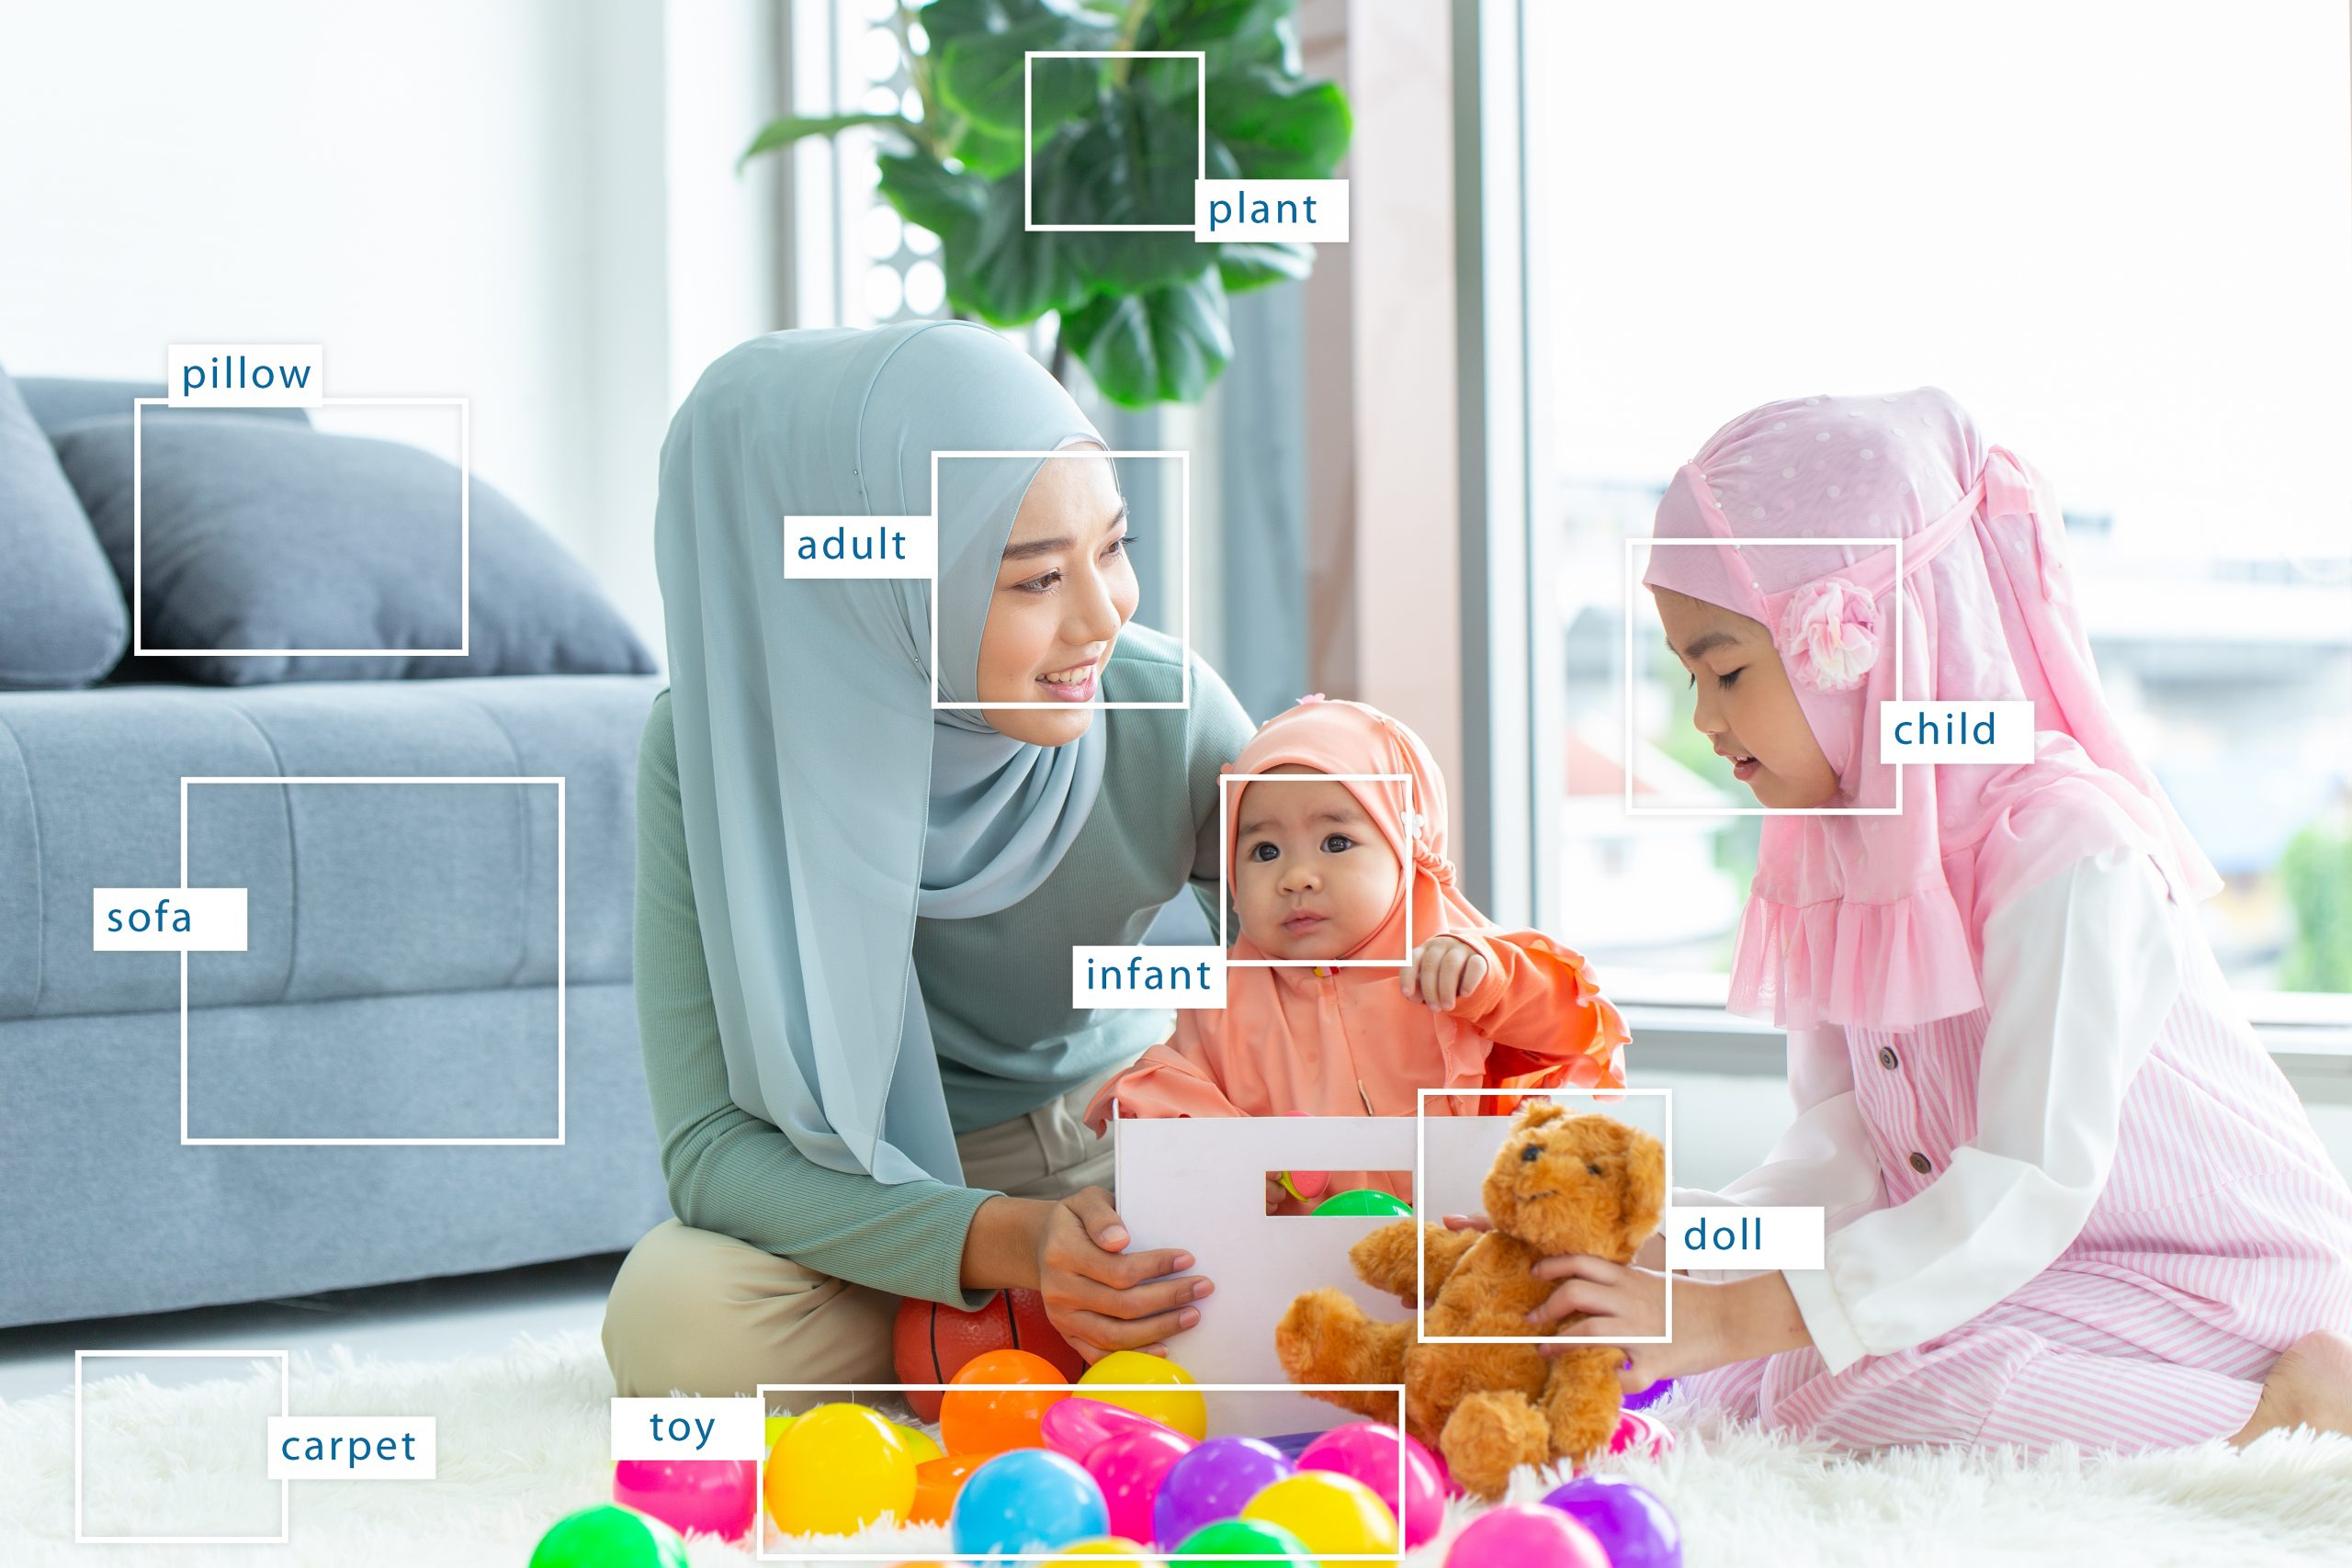 human people object identify machine learning image artificial intelligence artificial intelligence